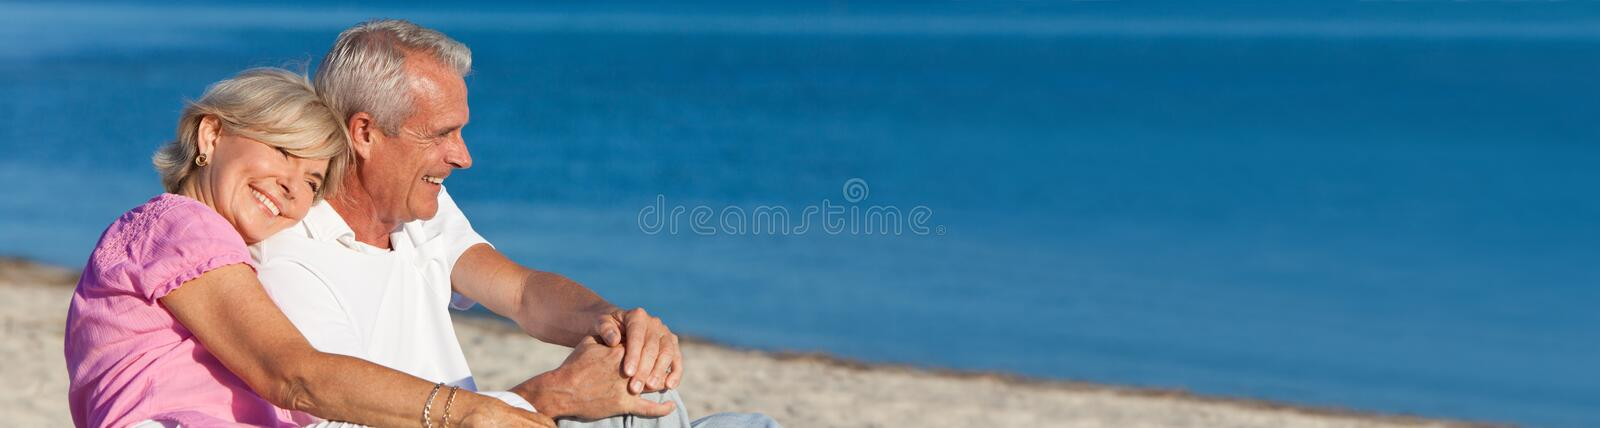 Happy Romantic Senior Couple Sitting Together on Beach. Panorama web banner happy romantic senior men and women couple together on a deserted beach royalty free stock images